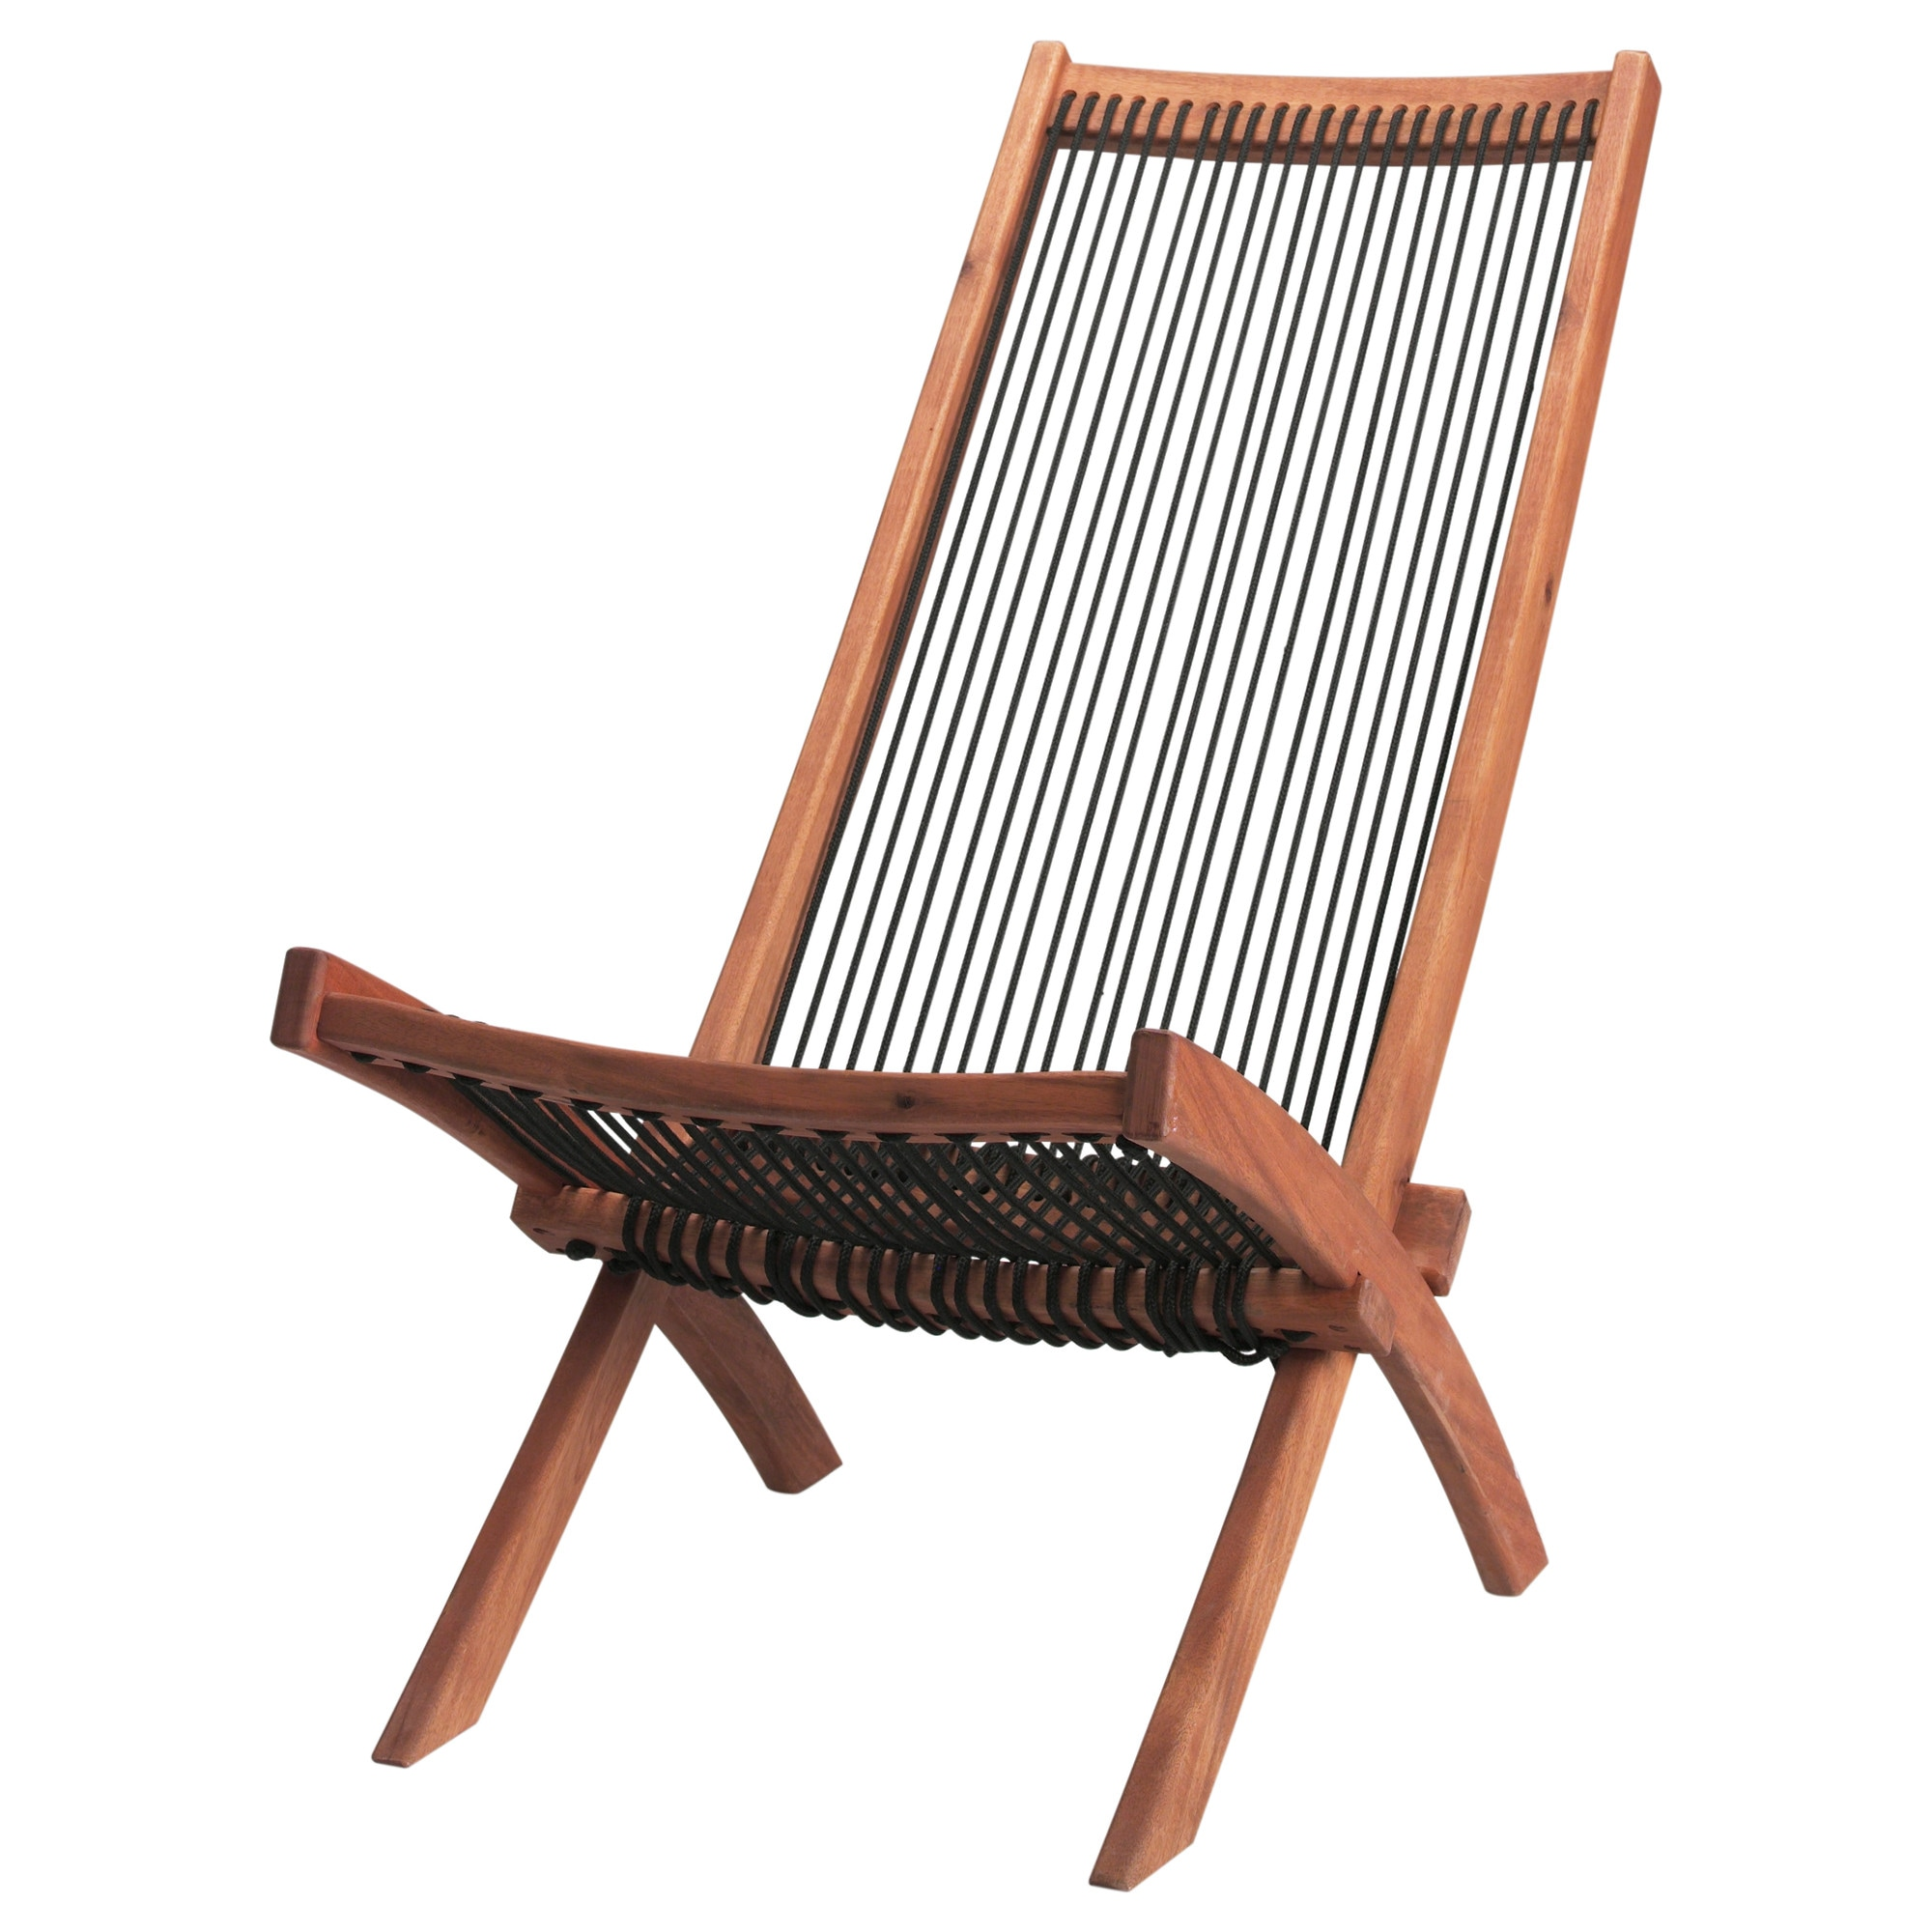 Wood folding chair outdoor - Bromm Chaise Outdoor Black Brown Width 18 7 8 Depth